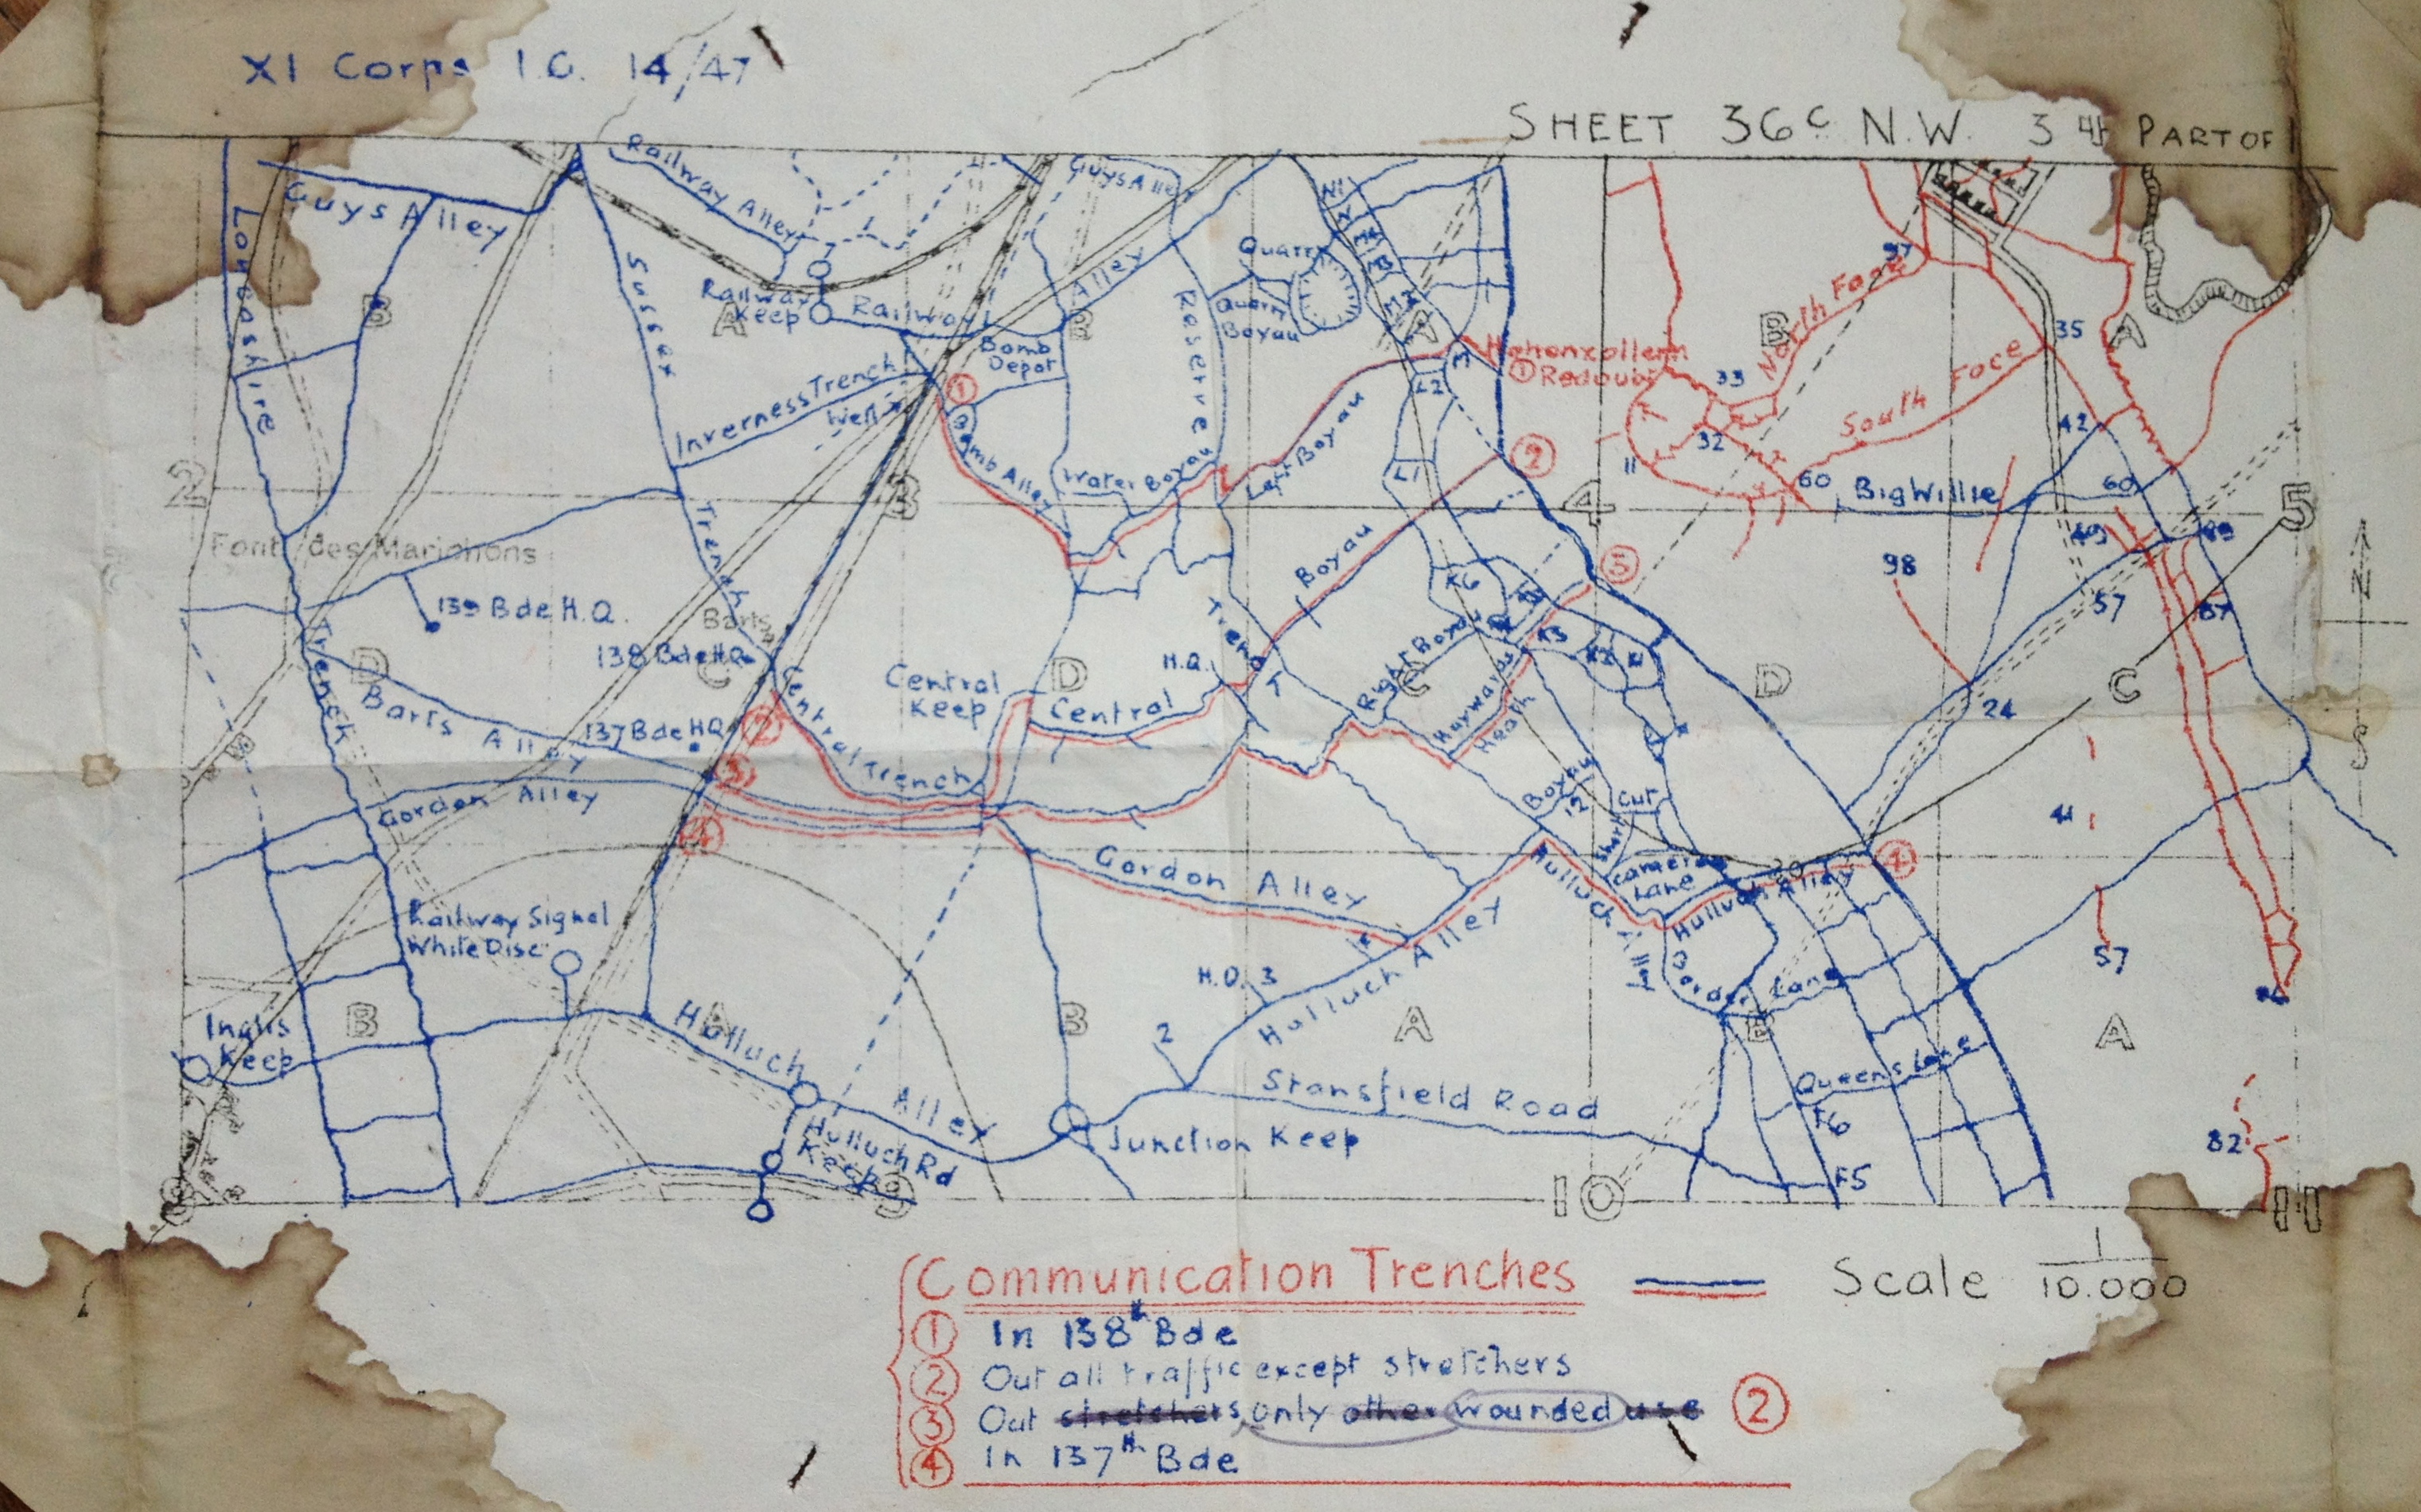 File:Battle of the Hohenzollern Redoubt trench map.jpg - Wikipedia